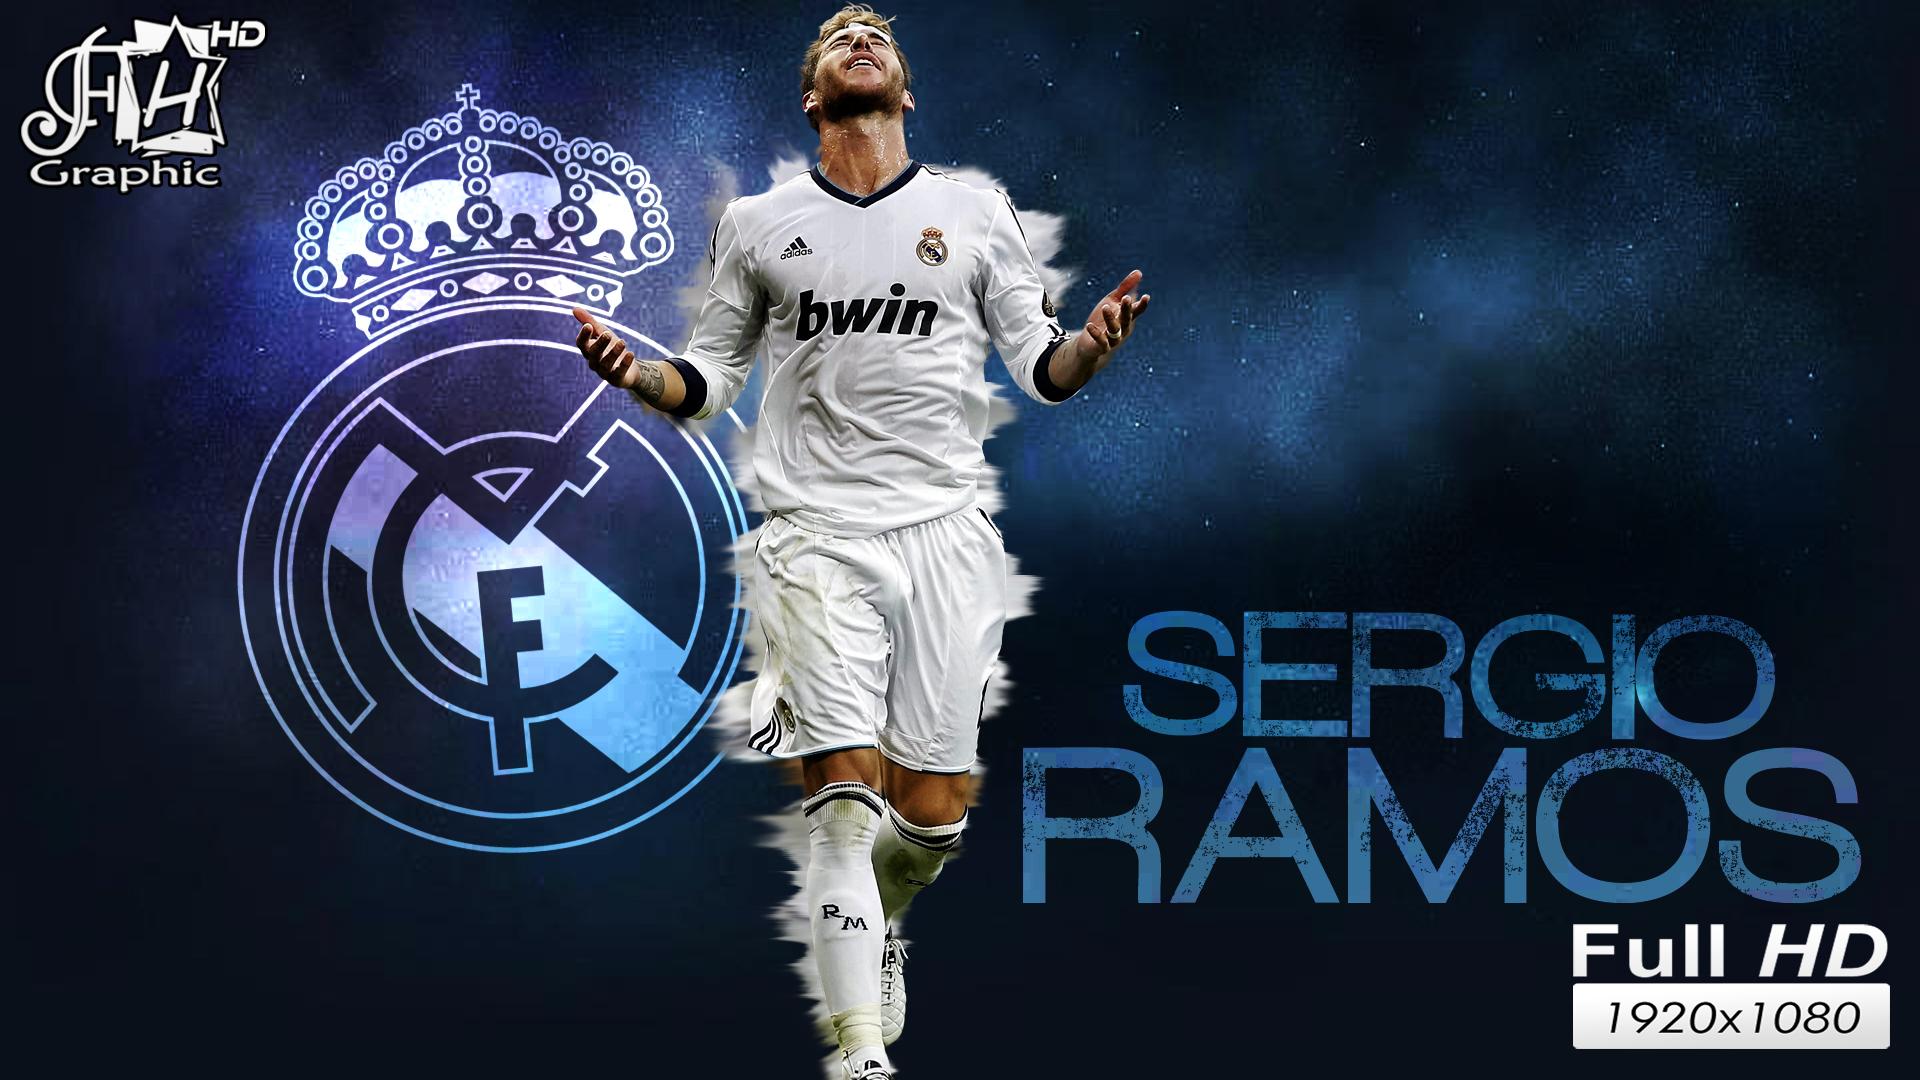 Sergio-Ramos-Futbool-Player-Images-wallpaper-wpc9009071